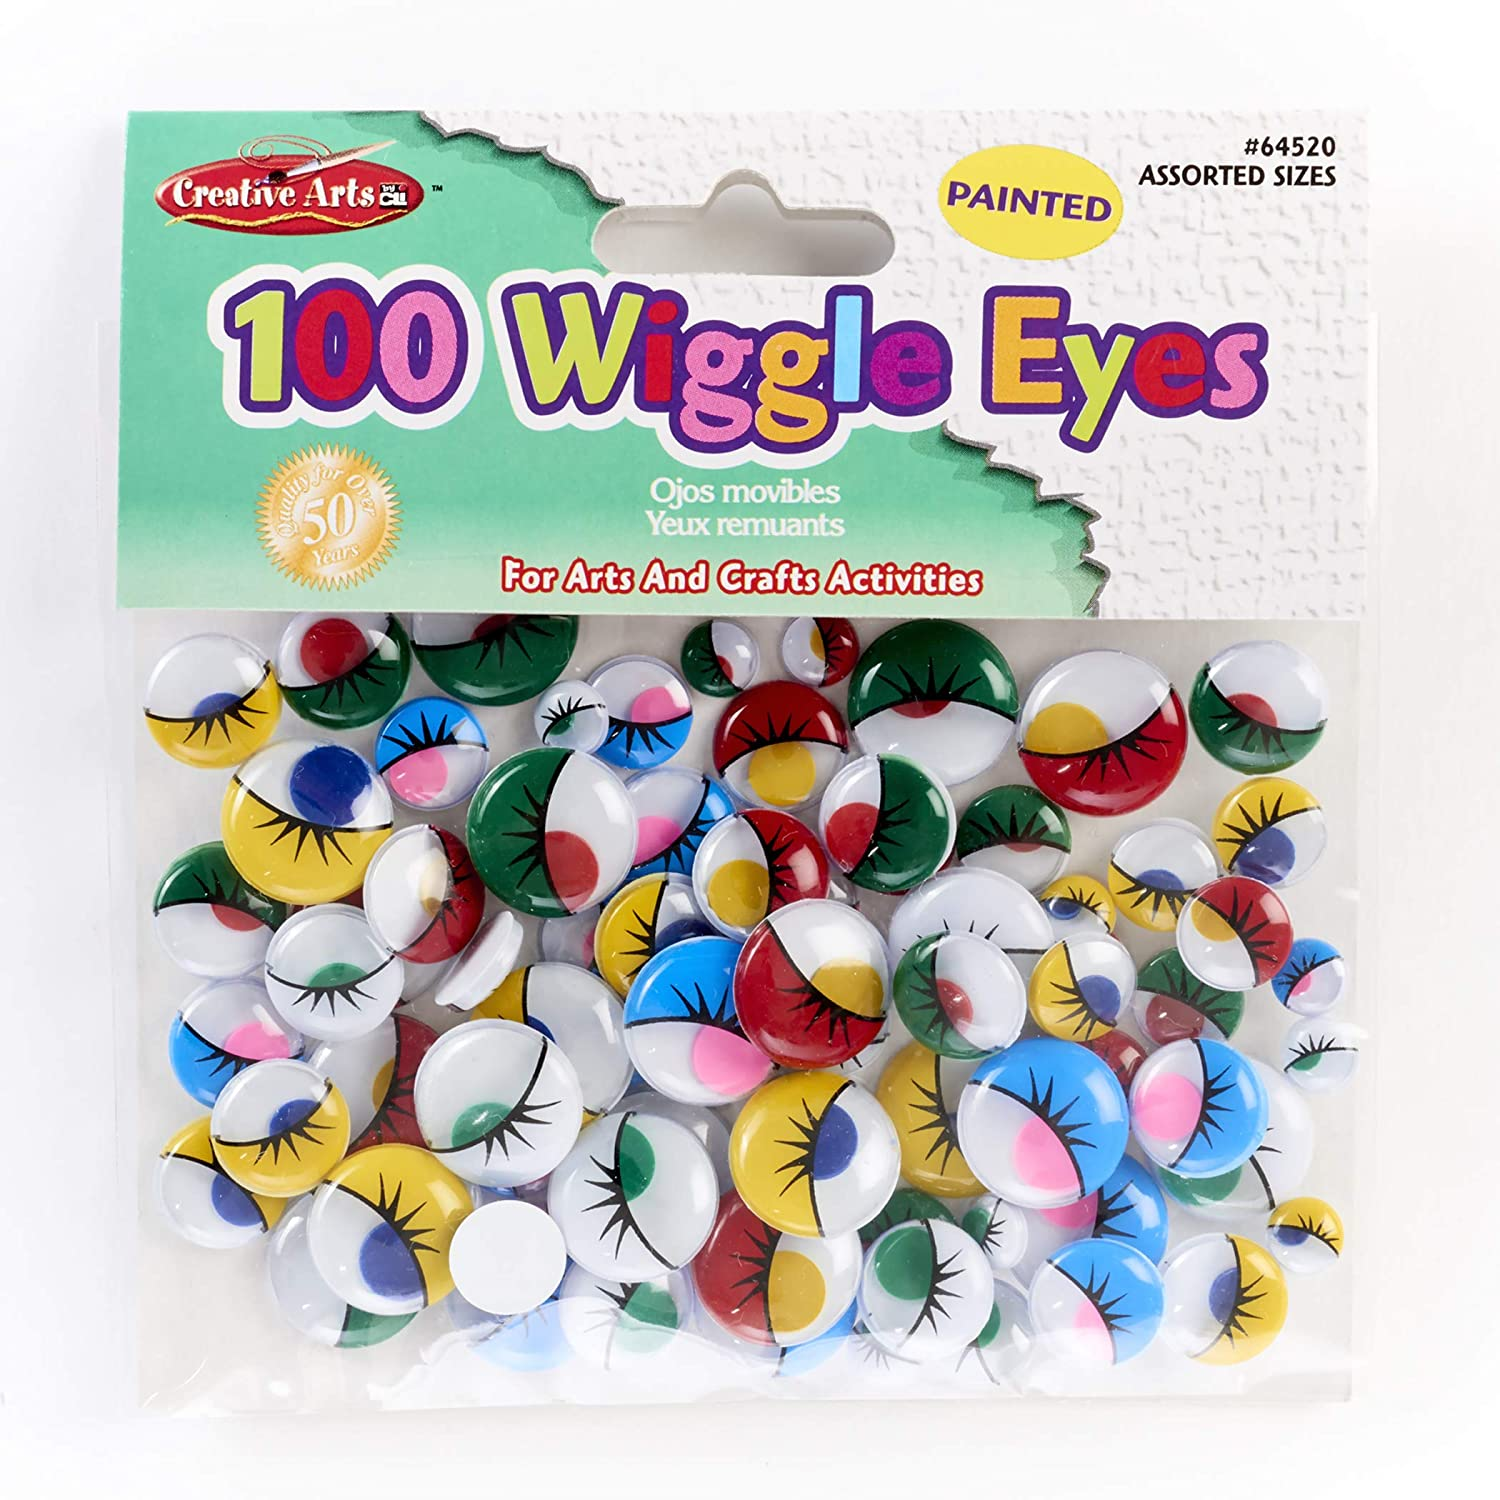 60 -Piece Pack 6 Pack AC3437-02 Creativity Street Peel and Stick Wiggle Eyes Multi-Pack